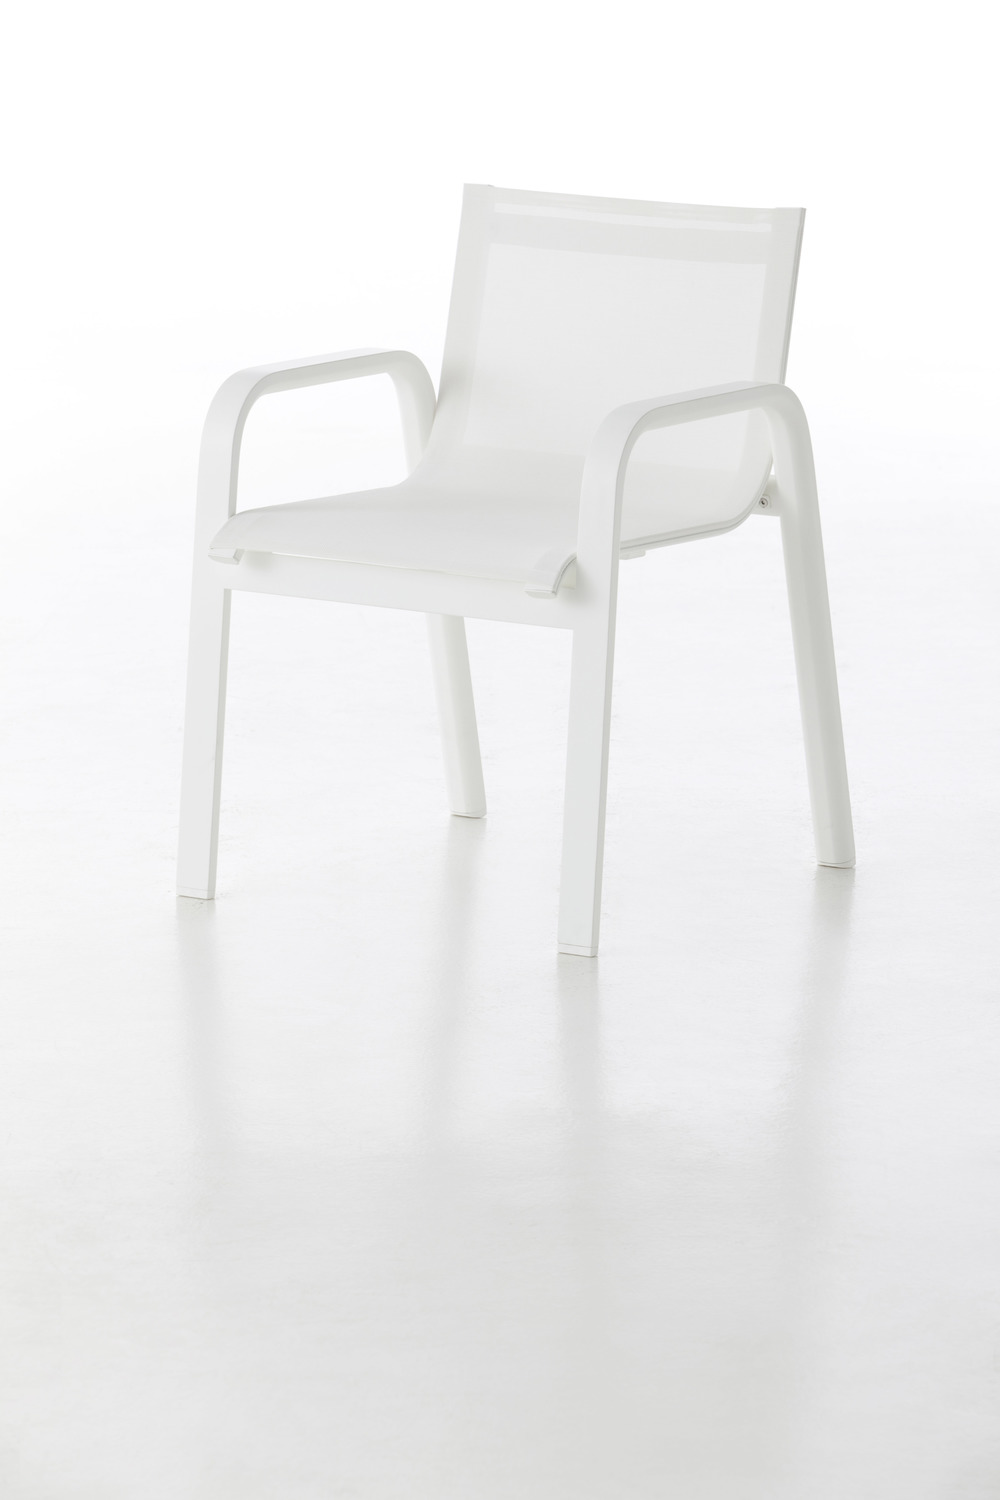 Gandia Blasco's Stack Chairs